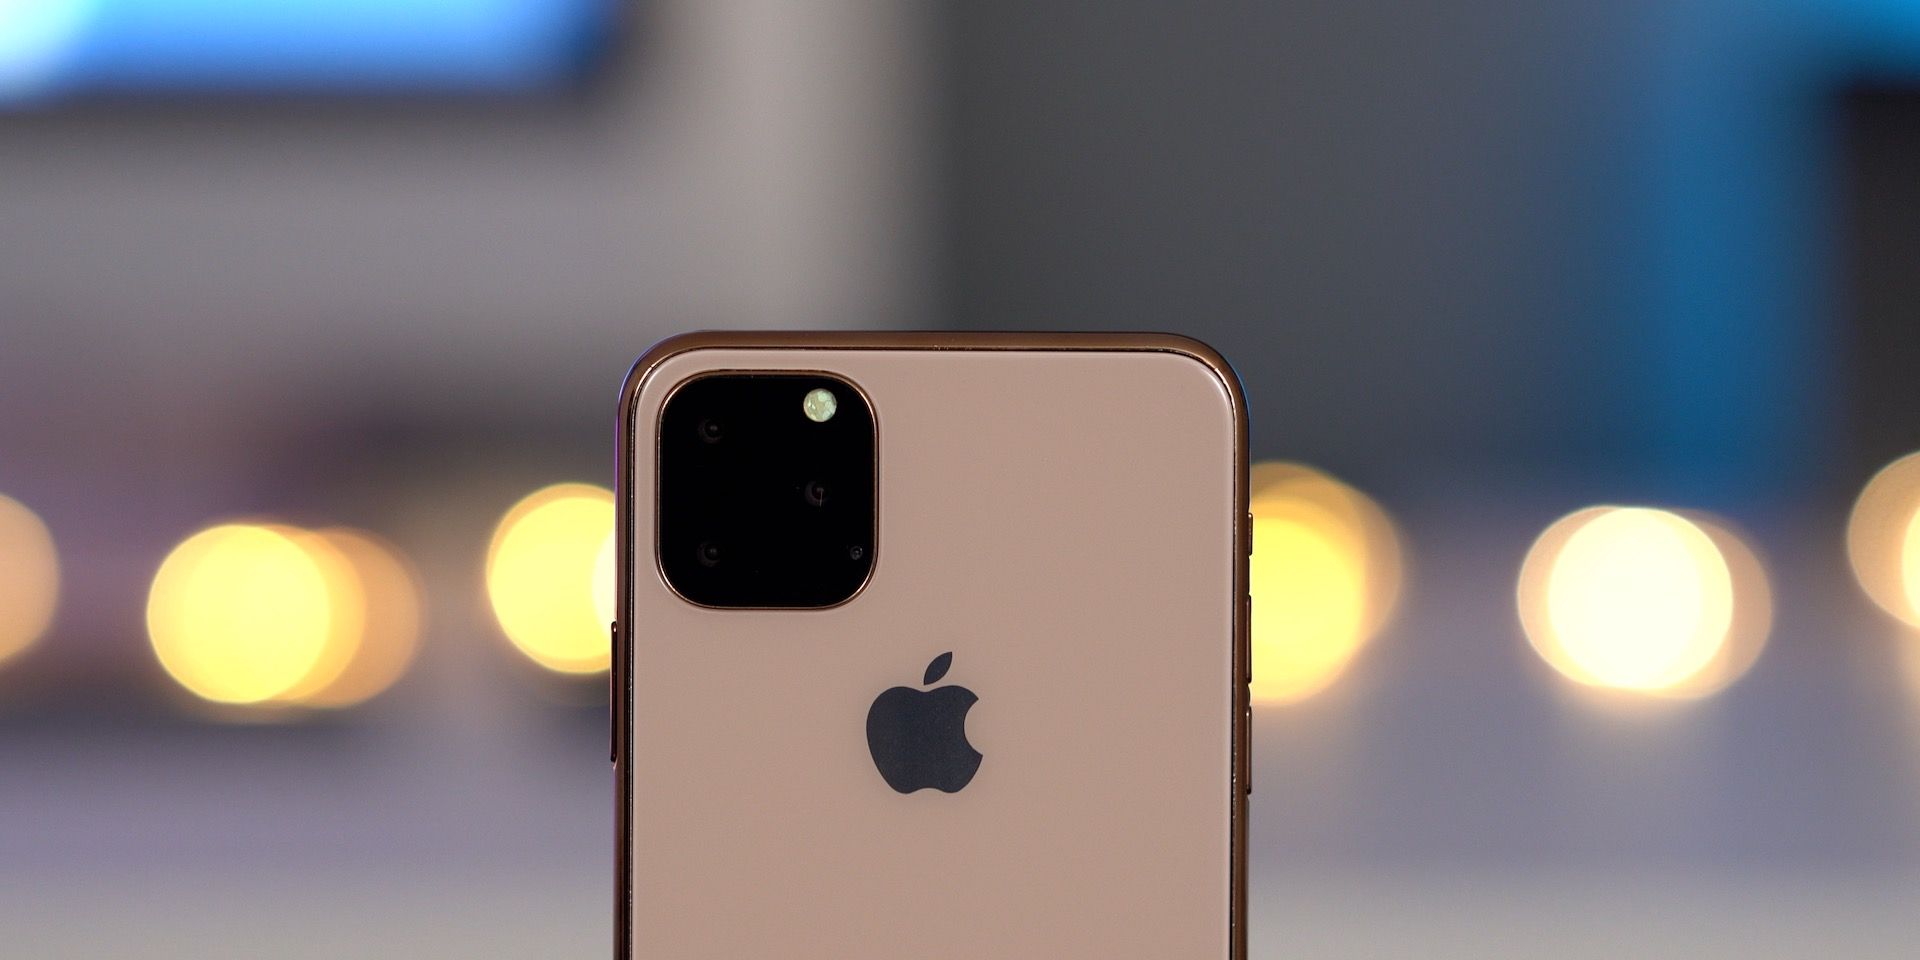 Maquete do iPhone 11